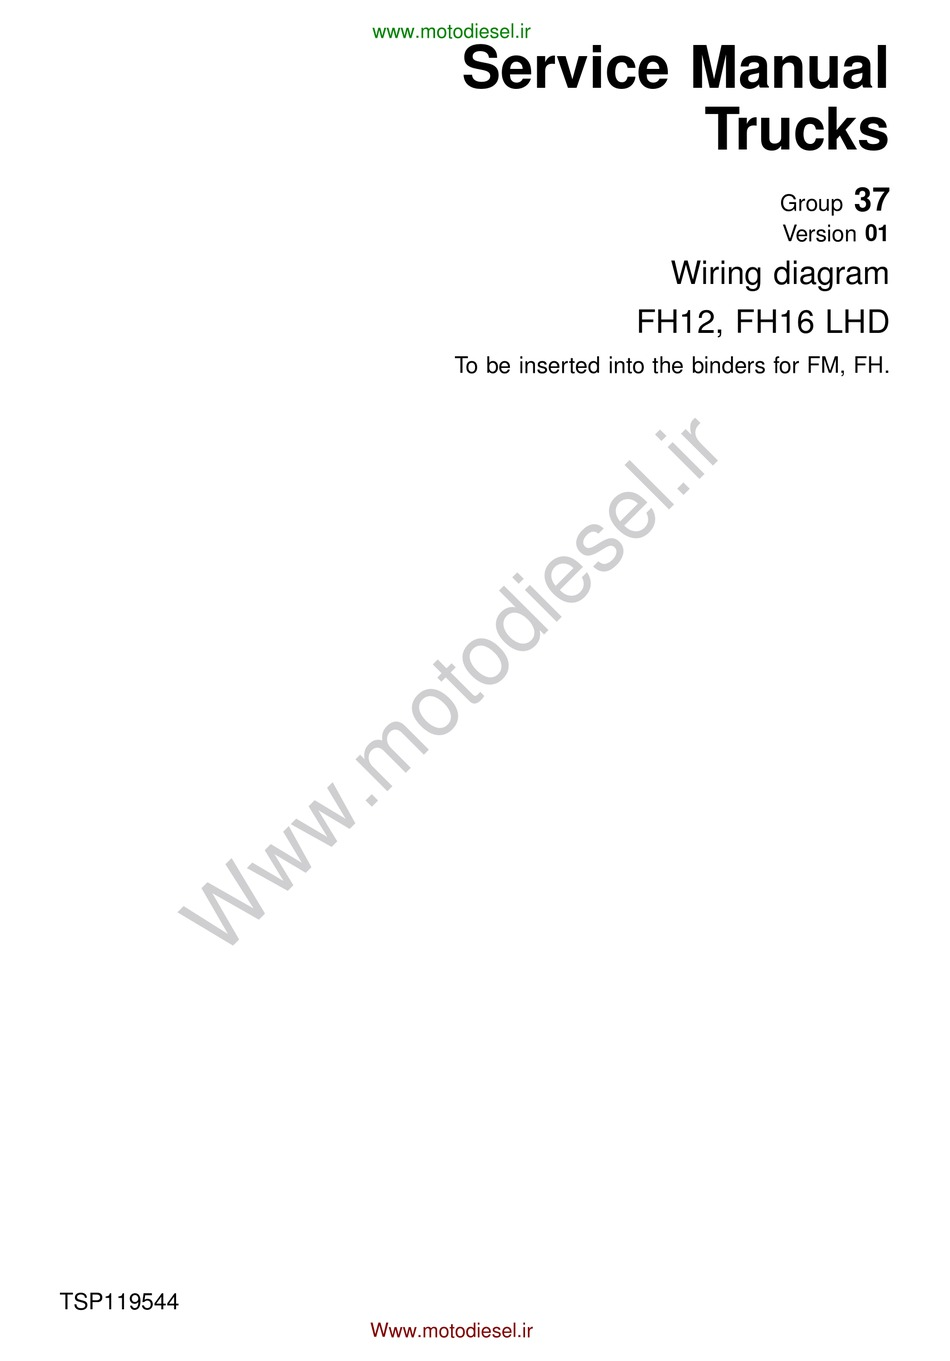 VOLVO FH12 LHD WIRING DIAGRAM Pdf Download | ManualsLib | Volvo Fh12 Wiring Diagram Pdf |  | ManualsLib